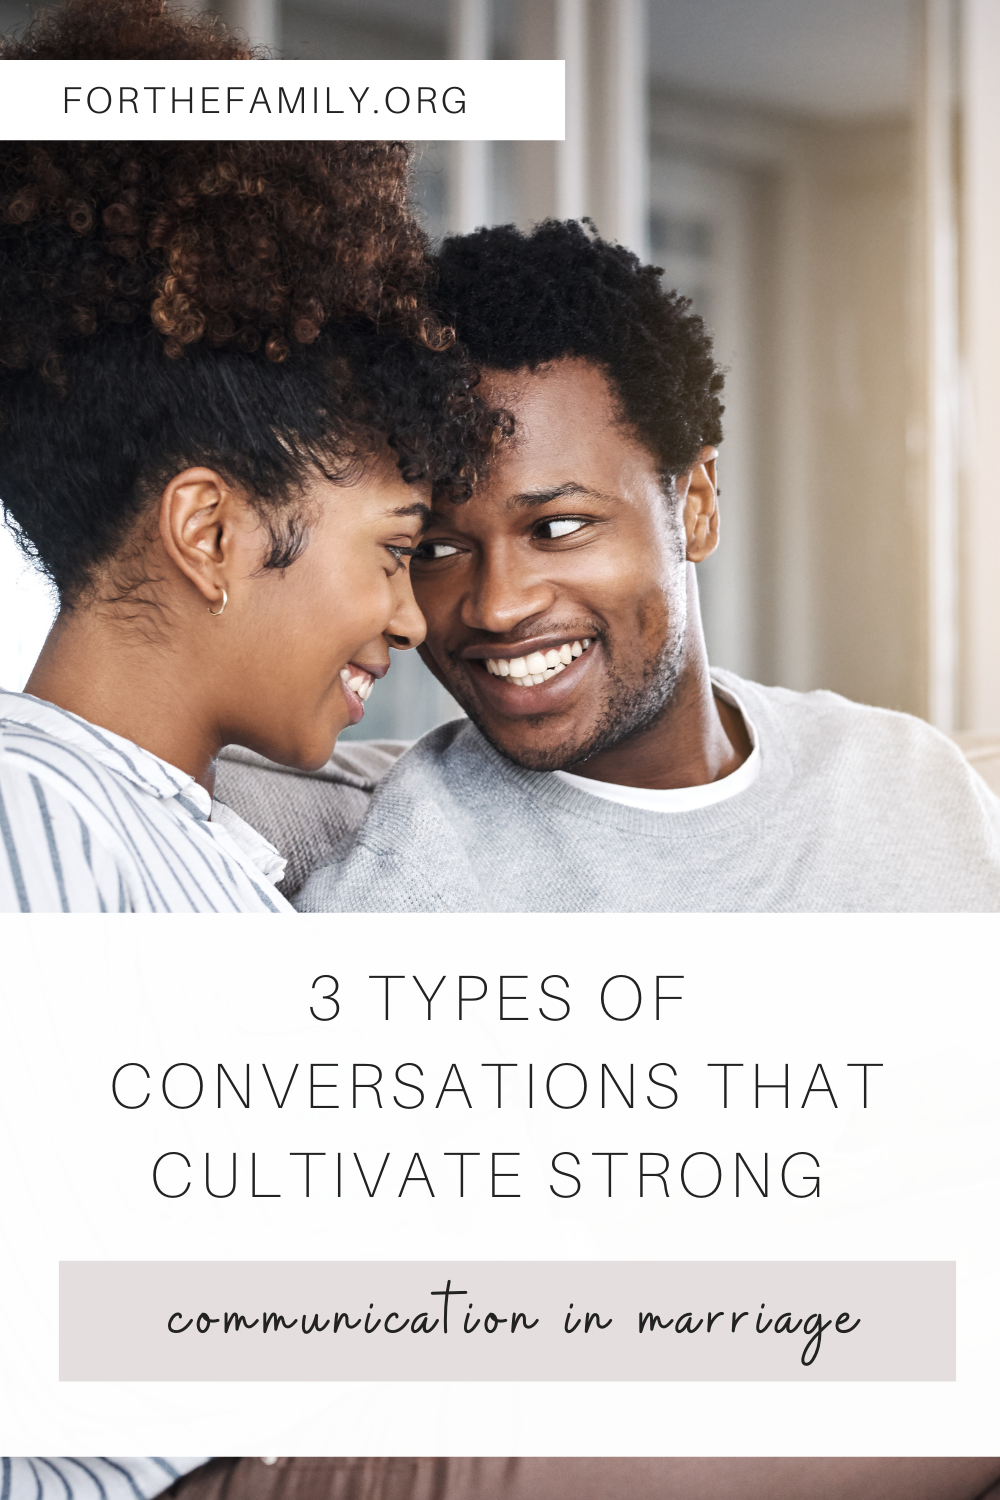 3 Types of Conversations that Cultivate Strong Communication in Marriage